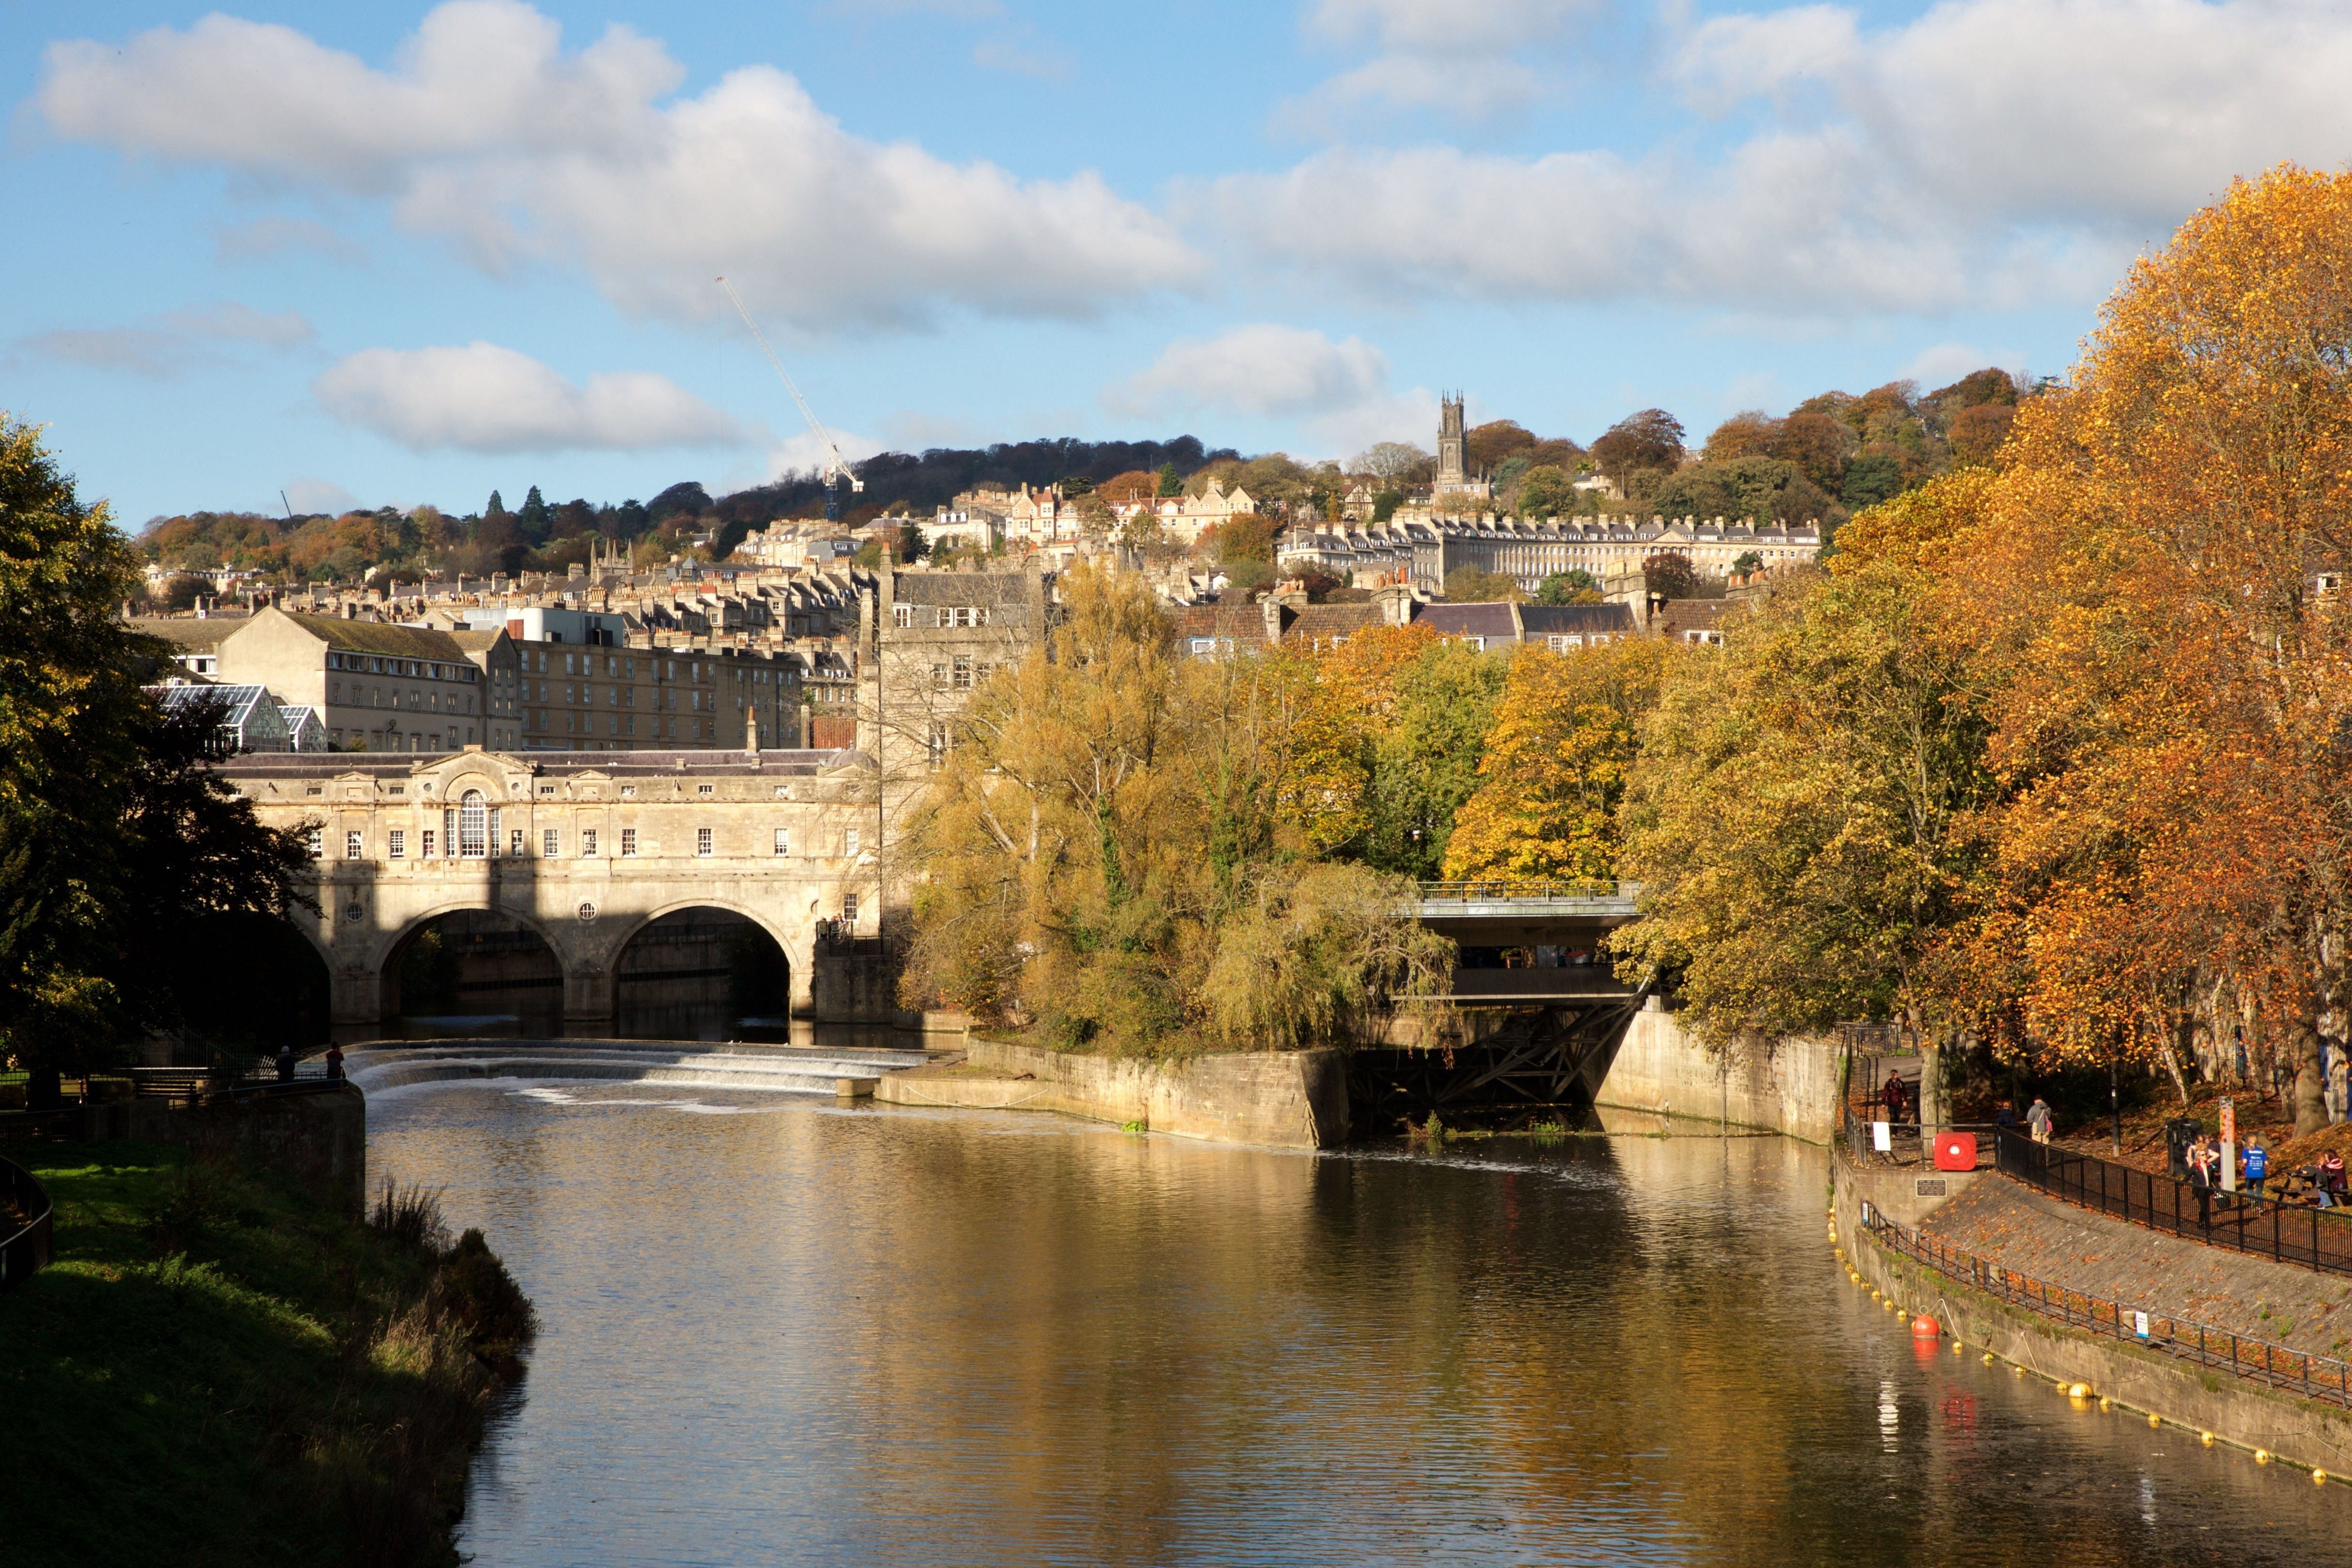 Pulteney Bridge will transport visitors back to the era of Jane Austen